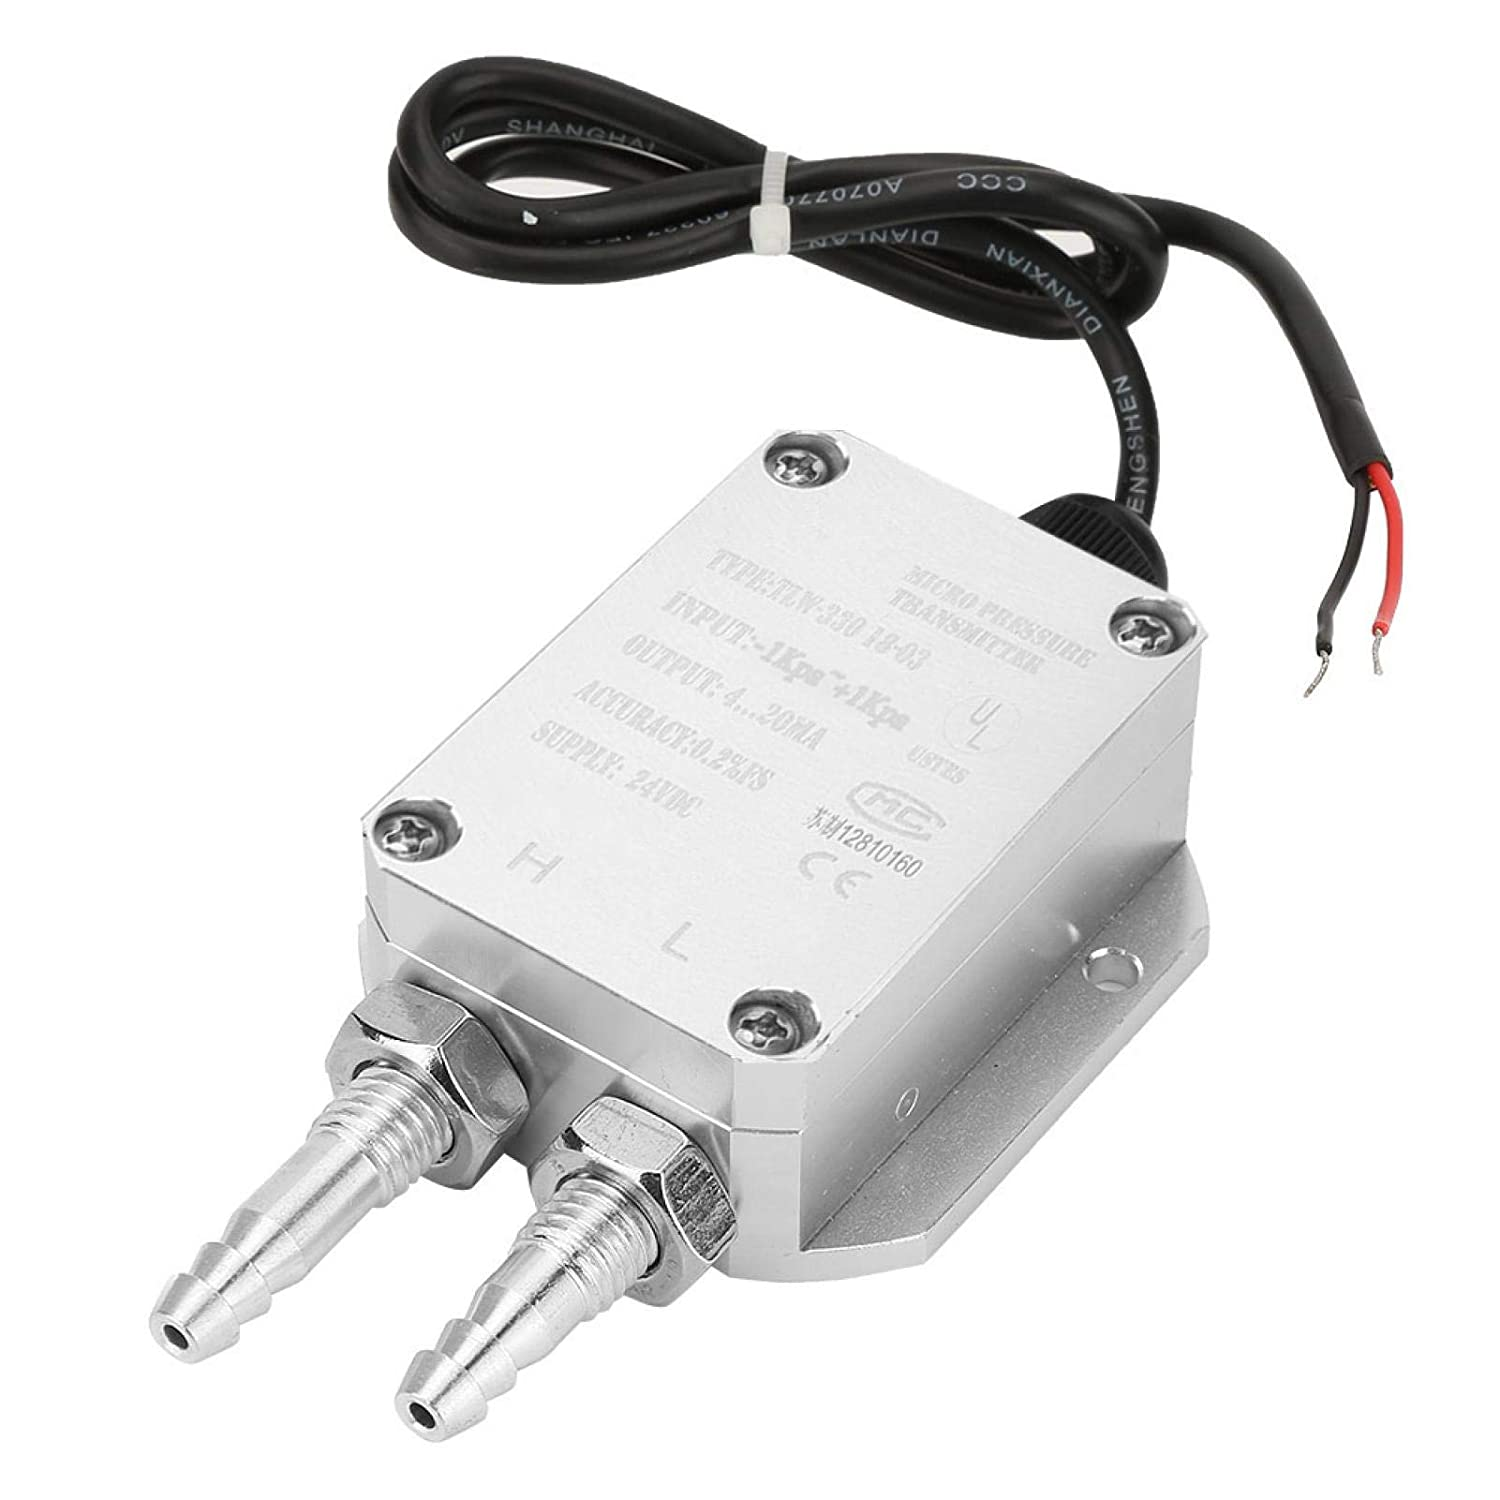 Difference Transmitter High Precision Aluminum cheap 4-20mA sale Die-cast